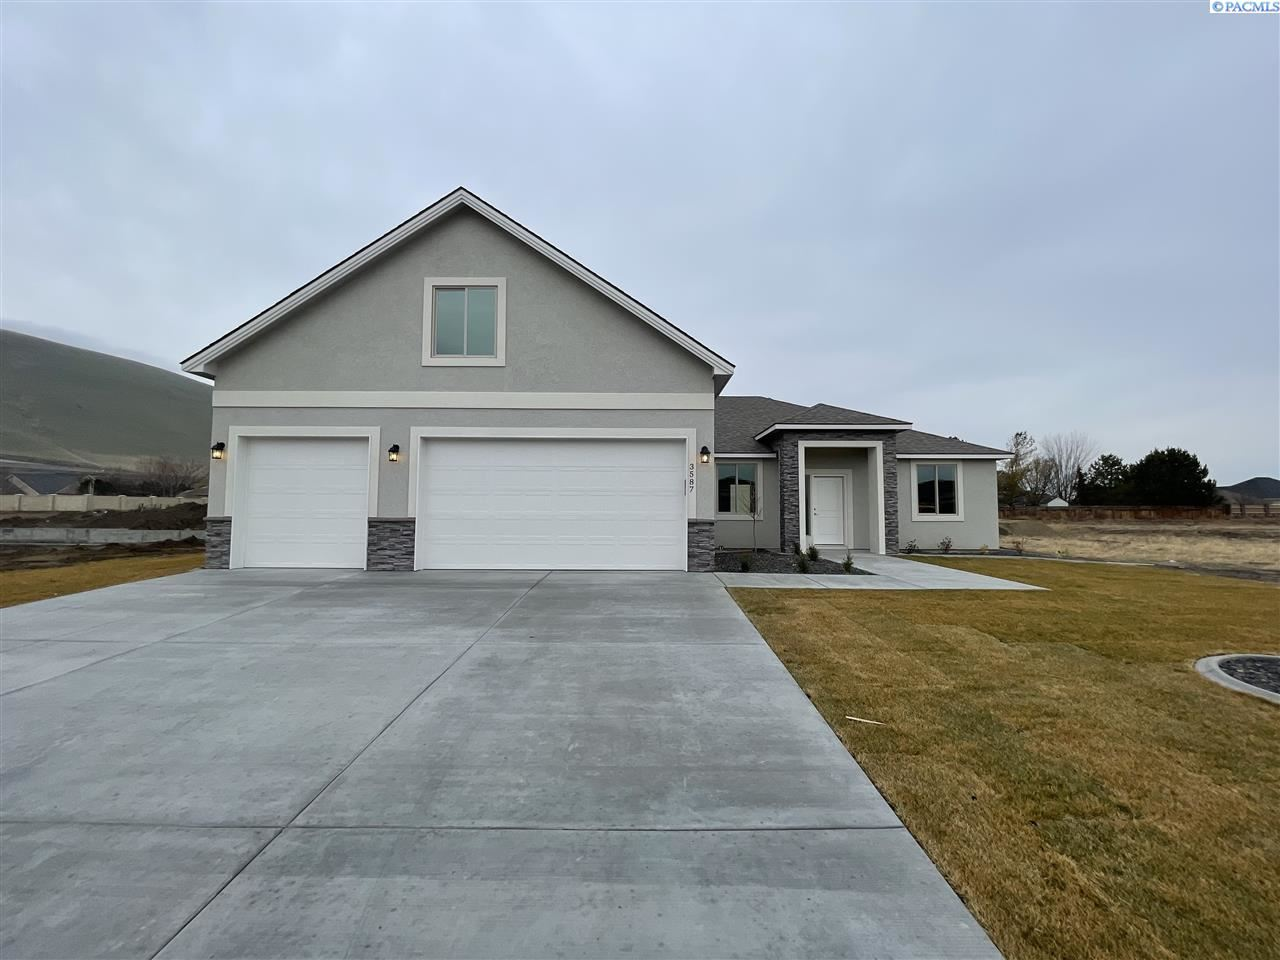 Photo of 3587 Curtis Dr, West Richland, WA 99353 (MLS # 250242)